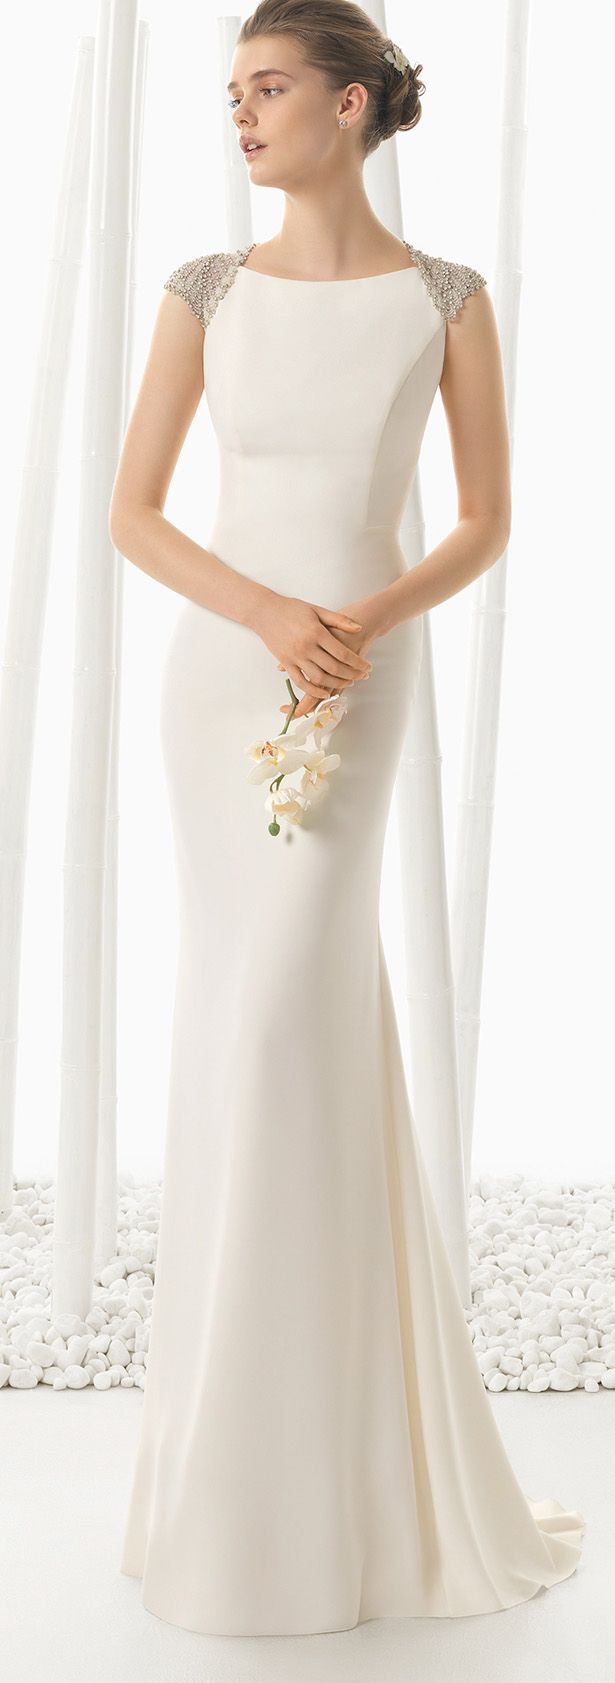 Rosa Clara Spring 2016 wedding dress - sophisticated and oh so glamourous!